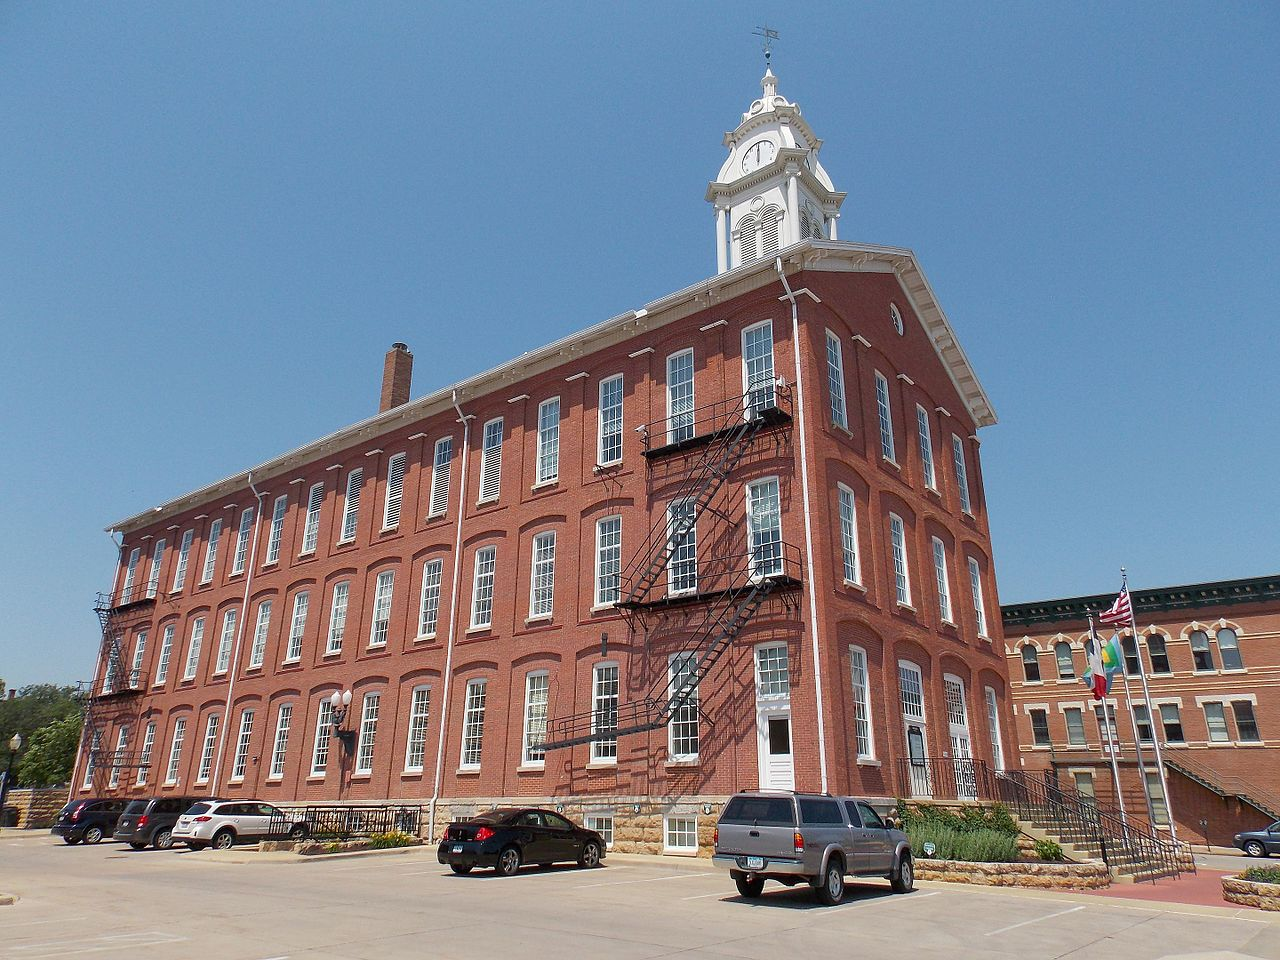 Dubuque City Hall was built in 1857 and is listed on the National Register of Historic Places.